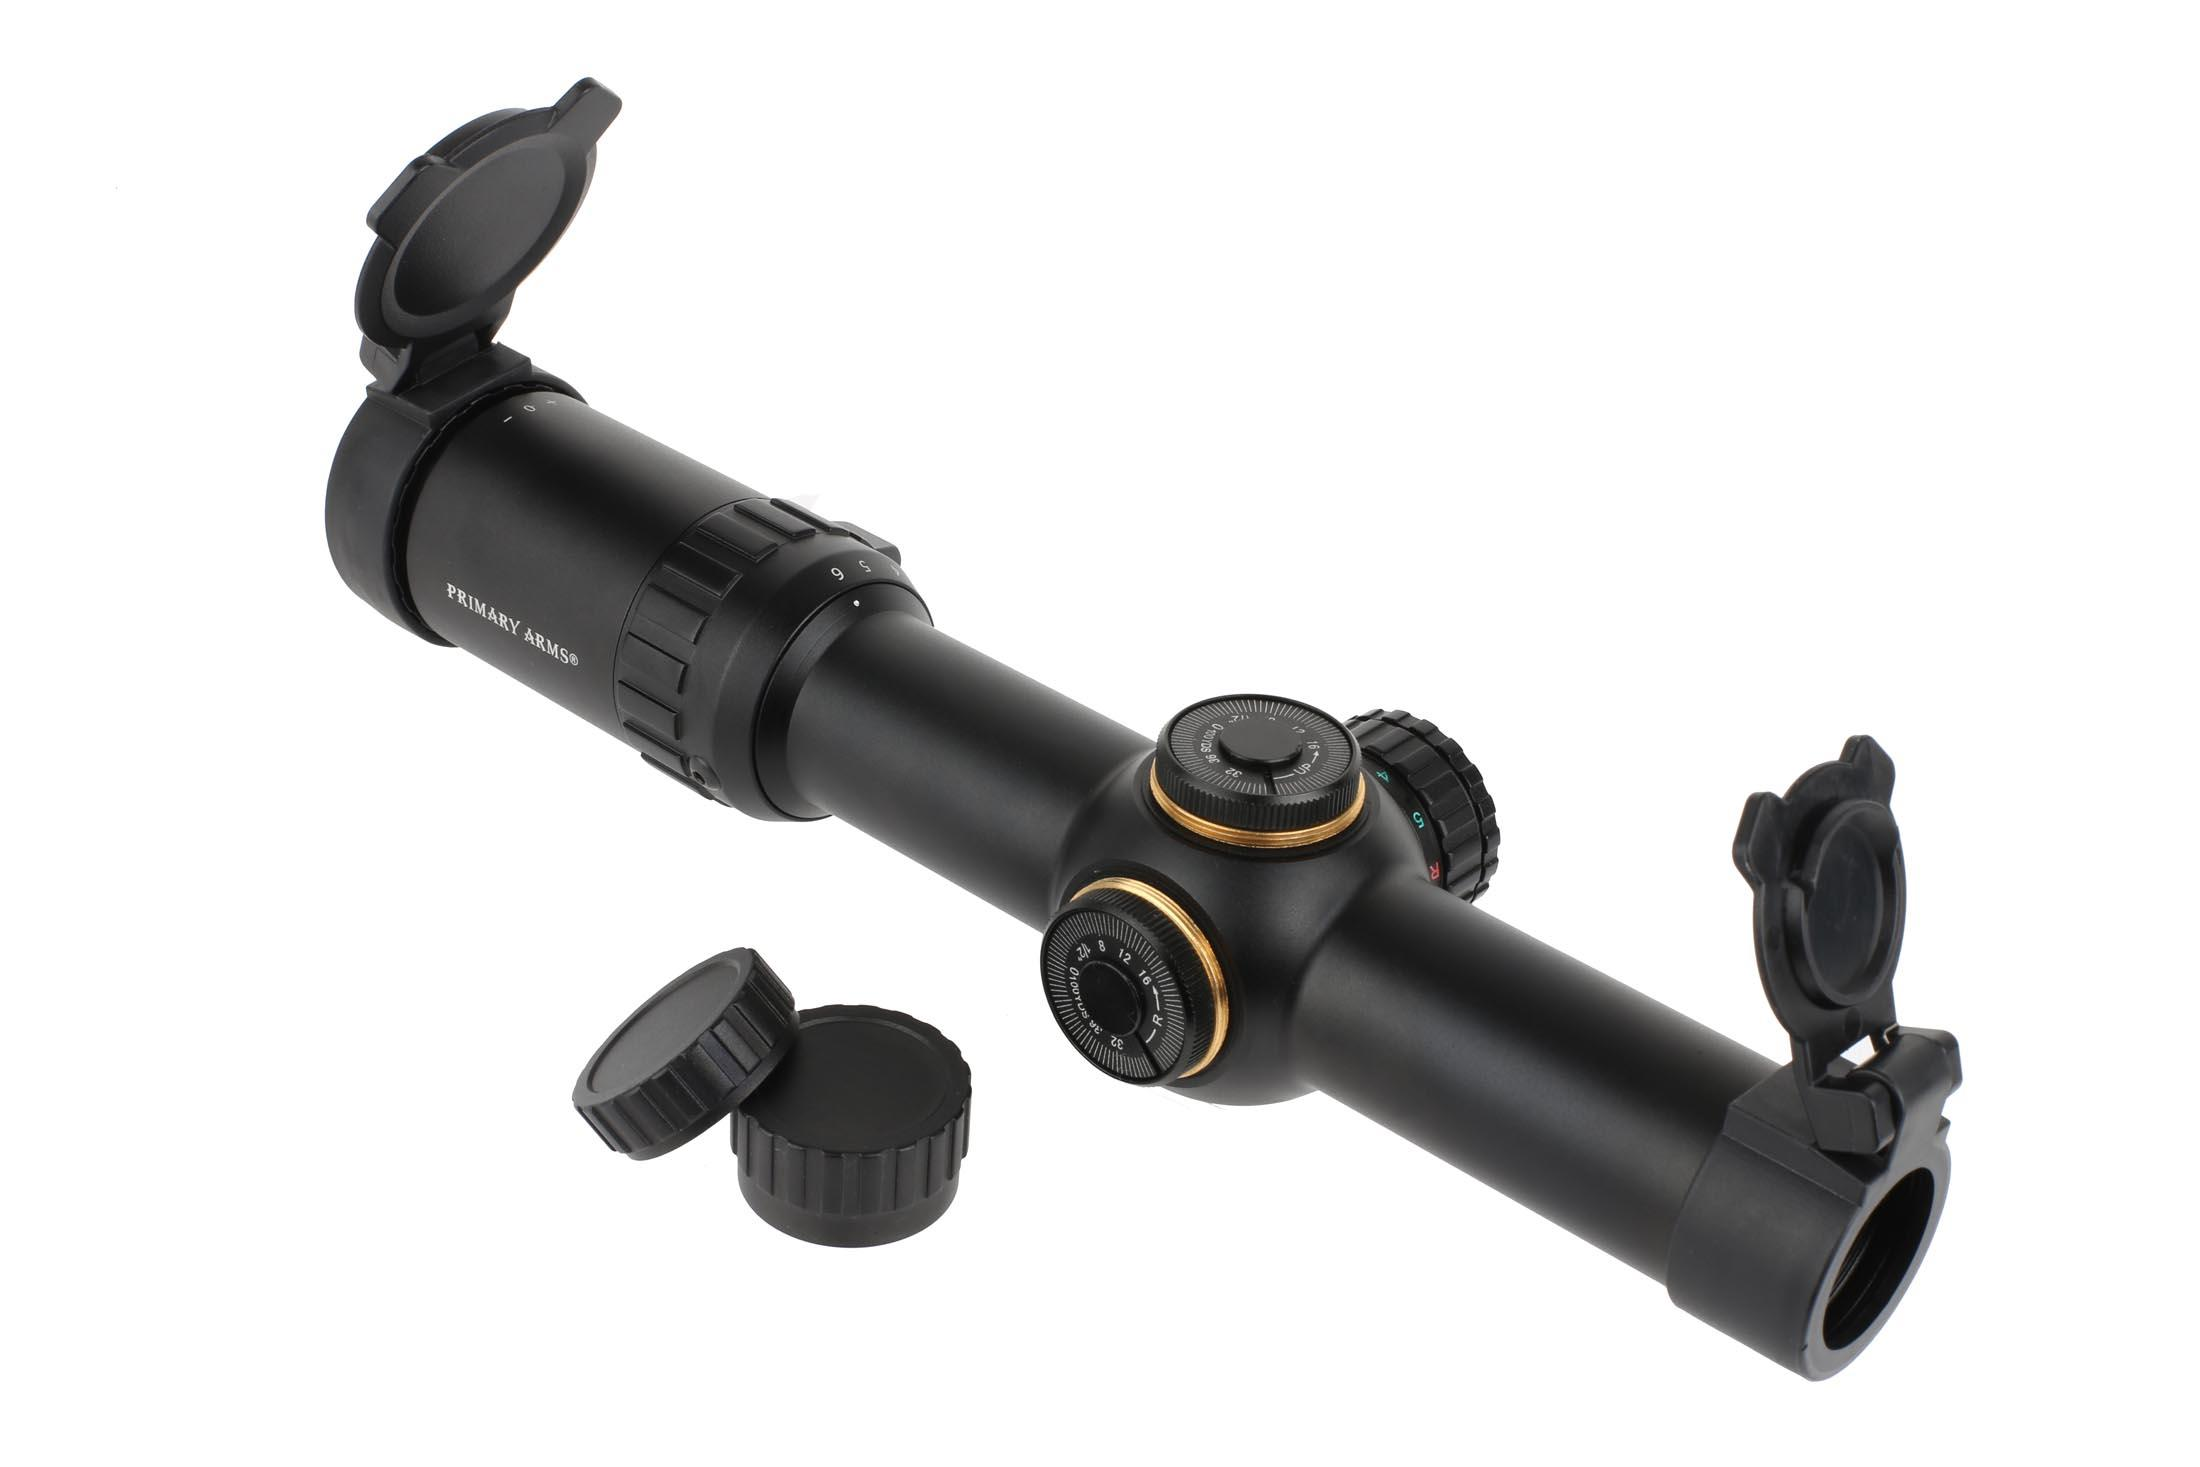 Primary Arms Gen III second focal plane 1-6x24mm riflescope has capped low-profile turrets for easy zeroing